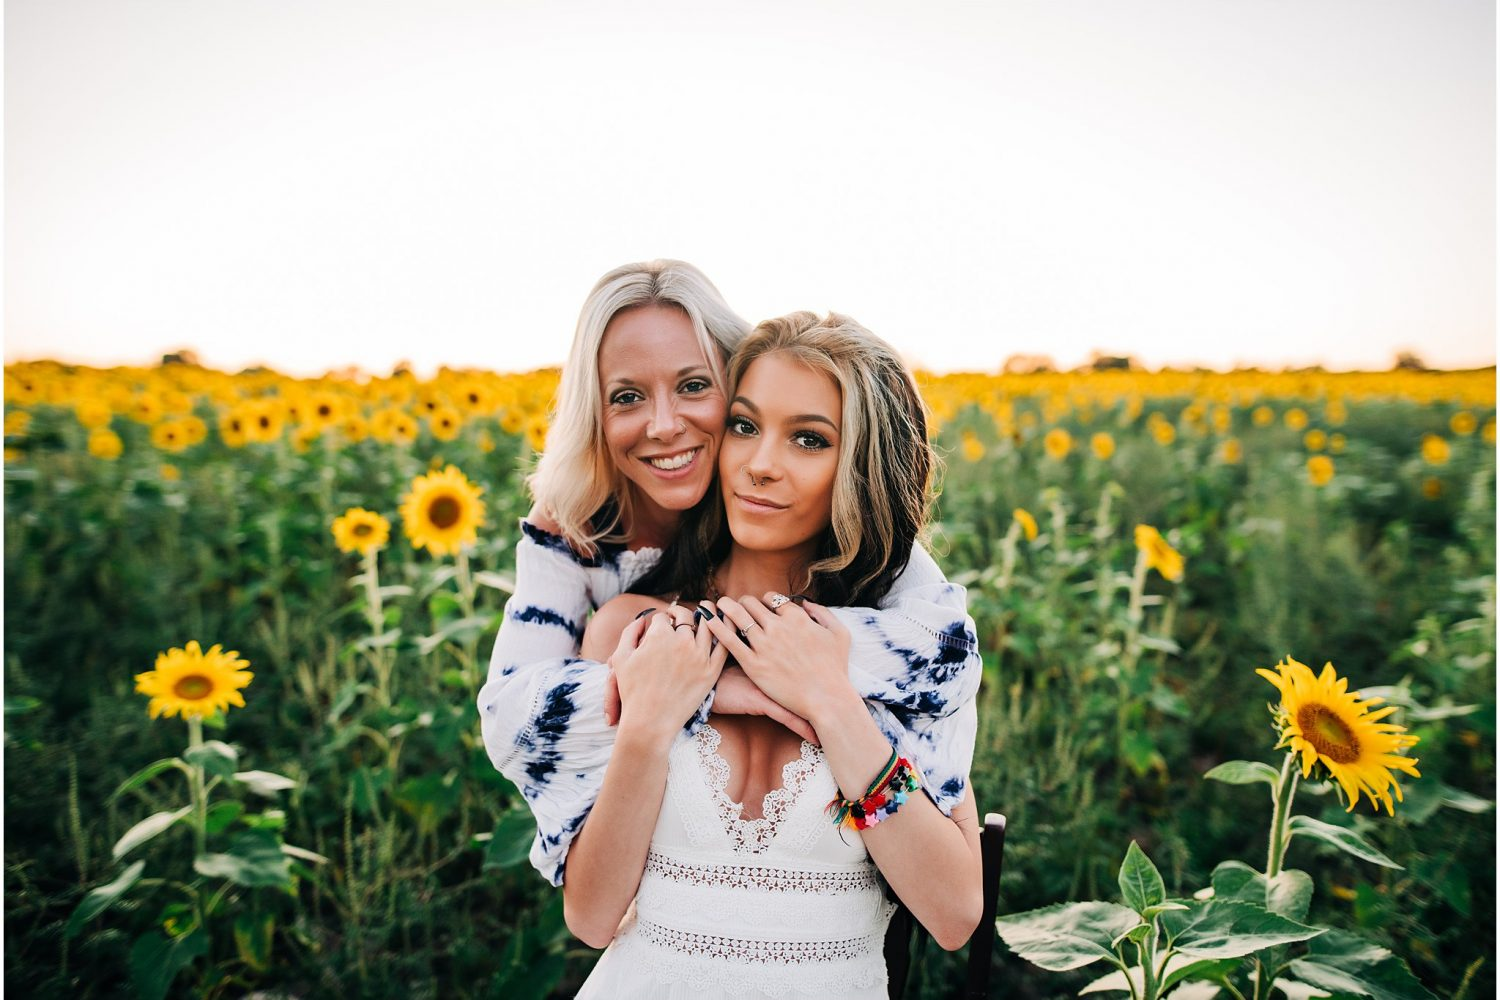 Mom and daughter surrounded by sunflower fields in Howell, MI at Munsell Farms